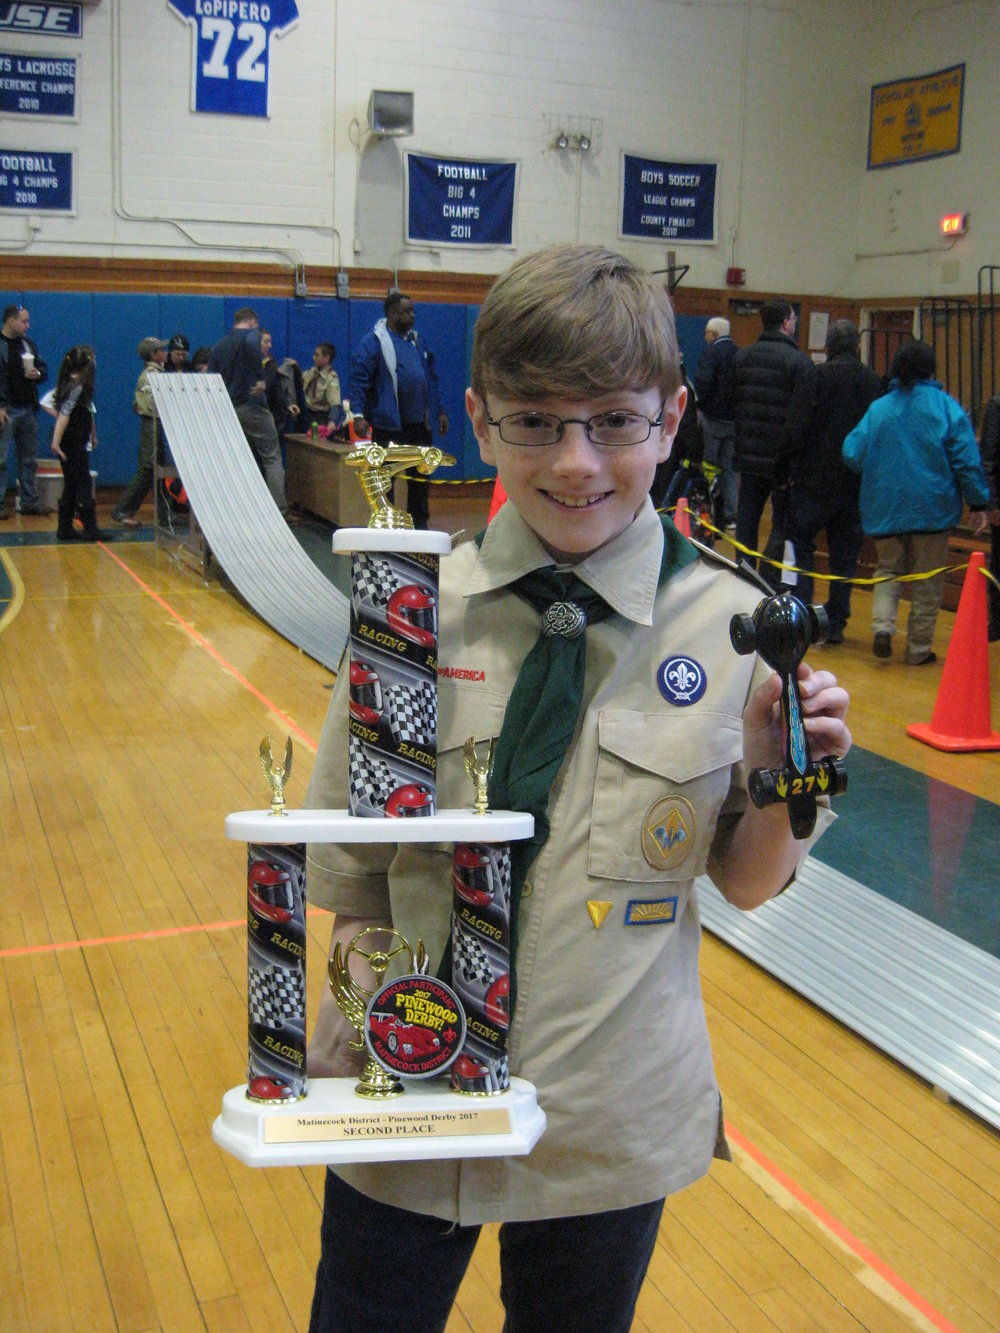 Second Place trophy winner Aidan L., of East Northport's Pack 52